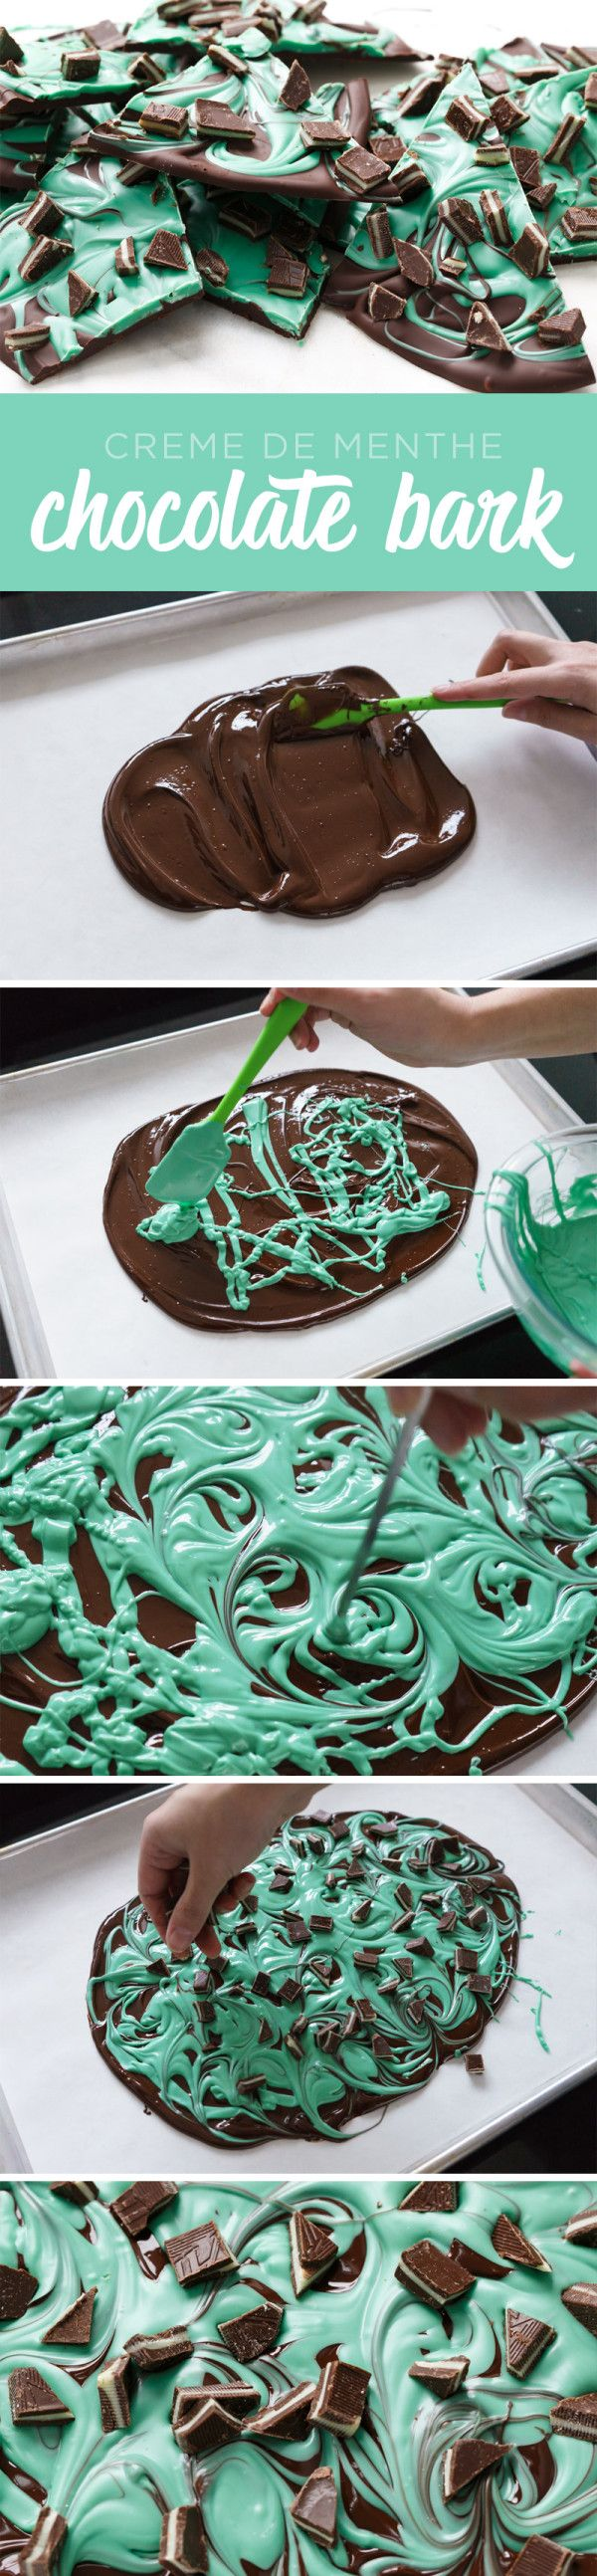 Easy 3-Ingredient Mint Chocolate Swirl Bark from LoveAndOliveOil | Lindsay Landis